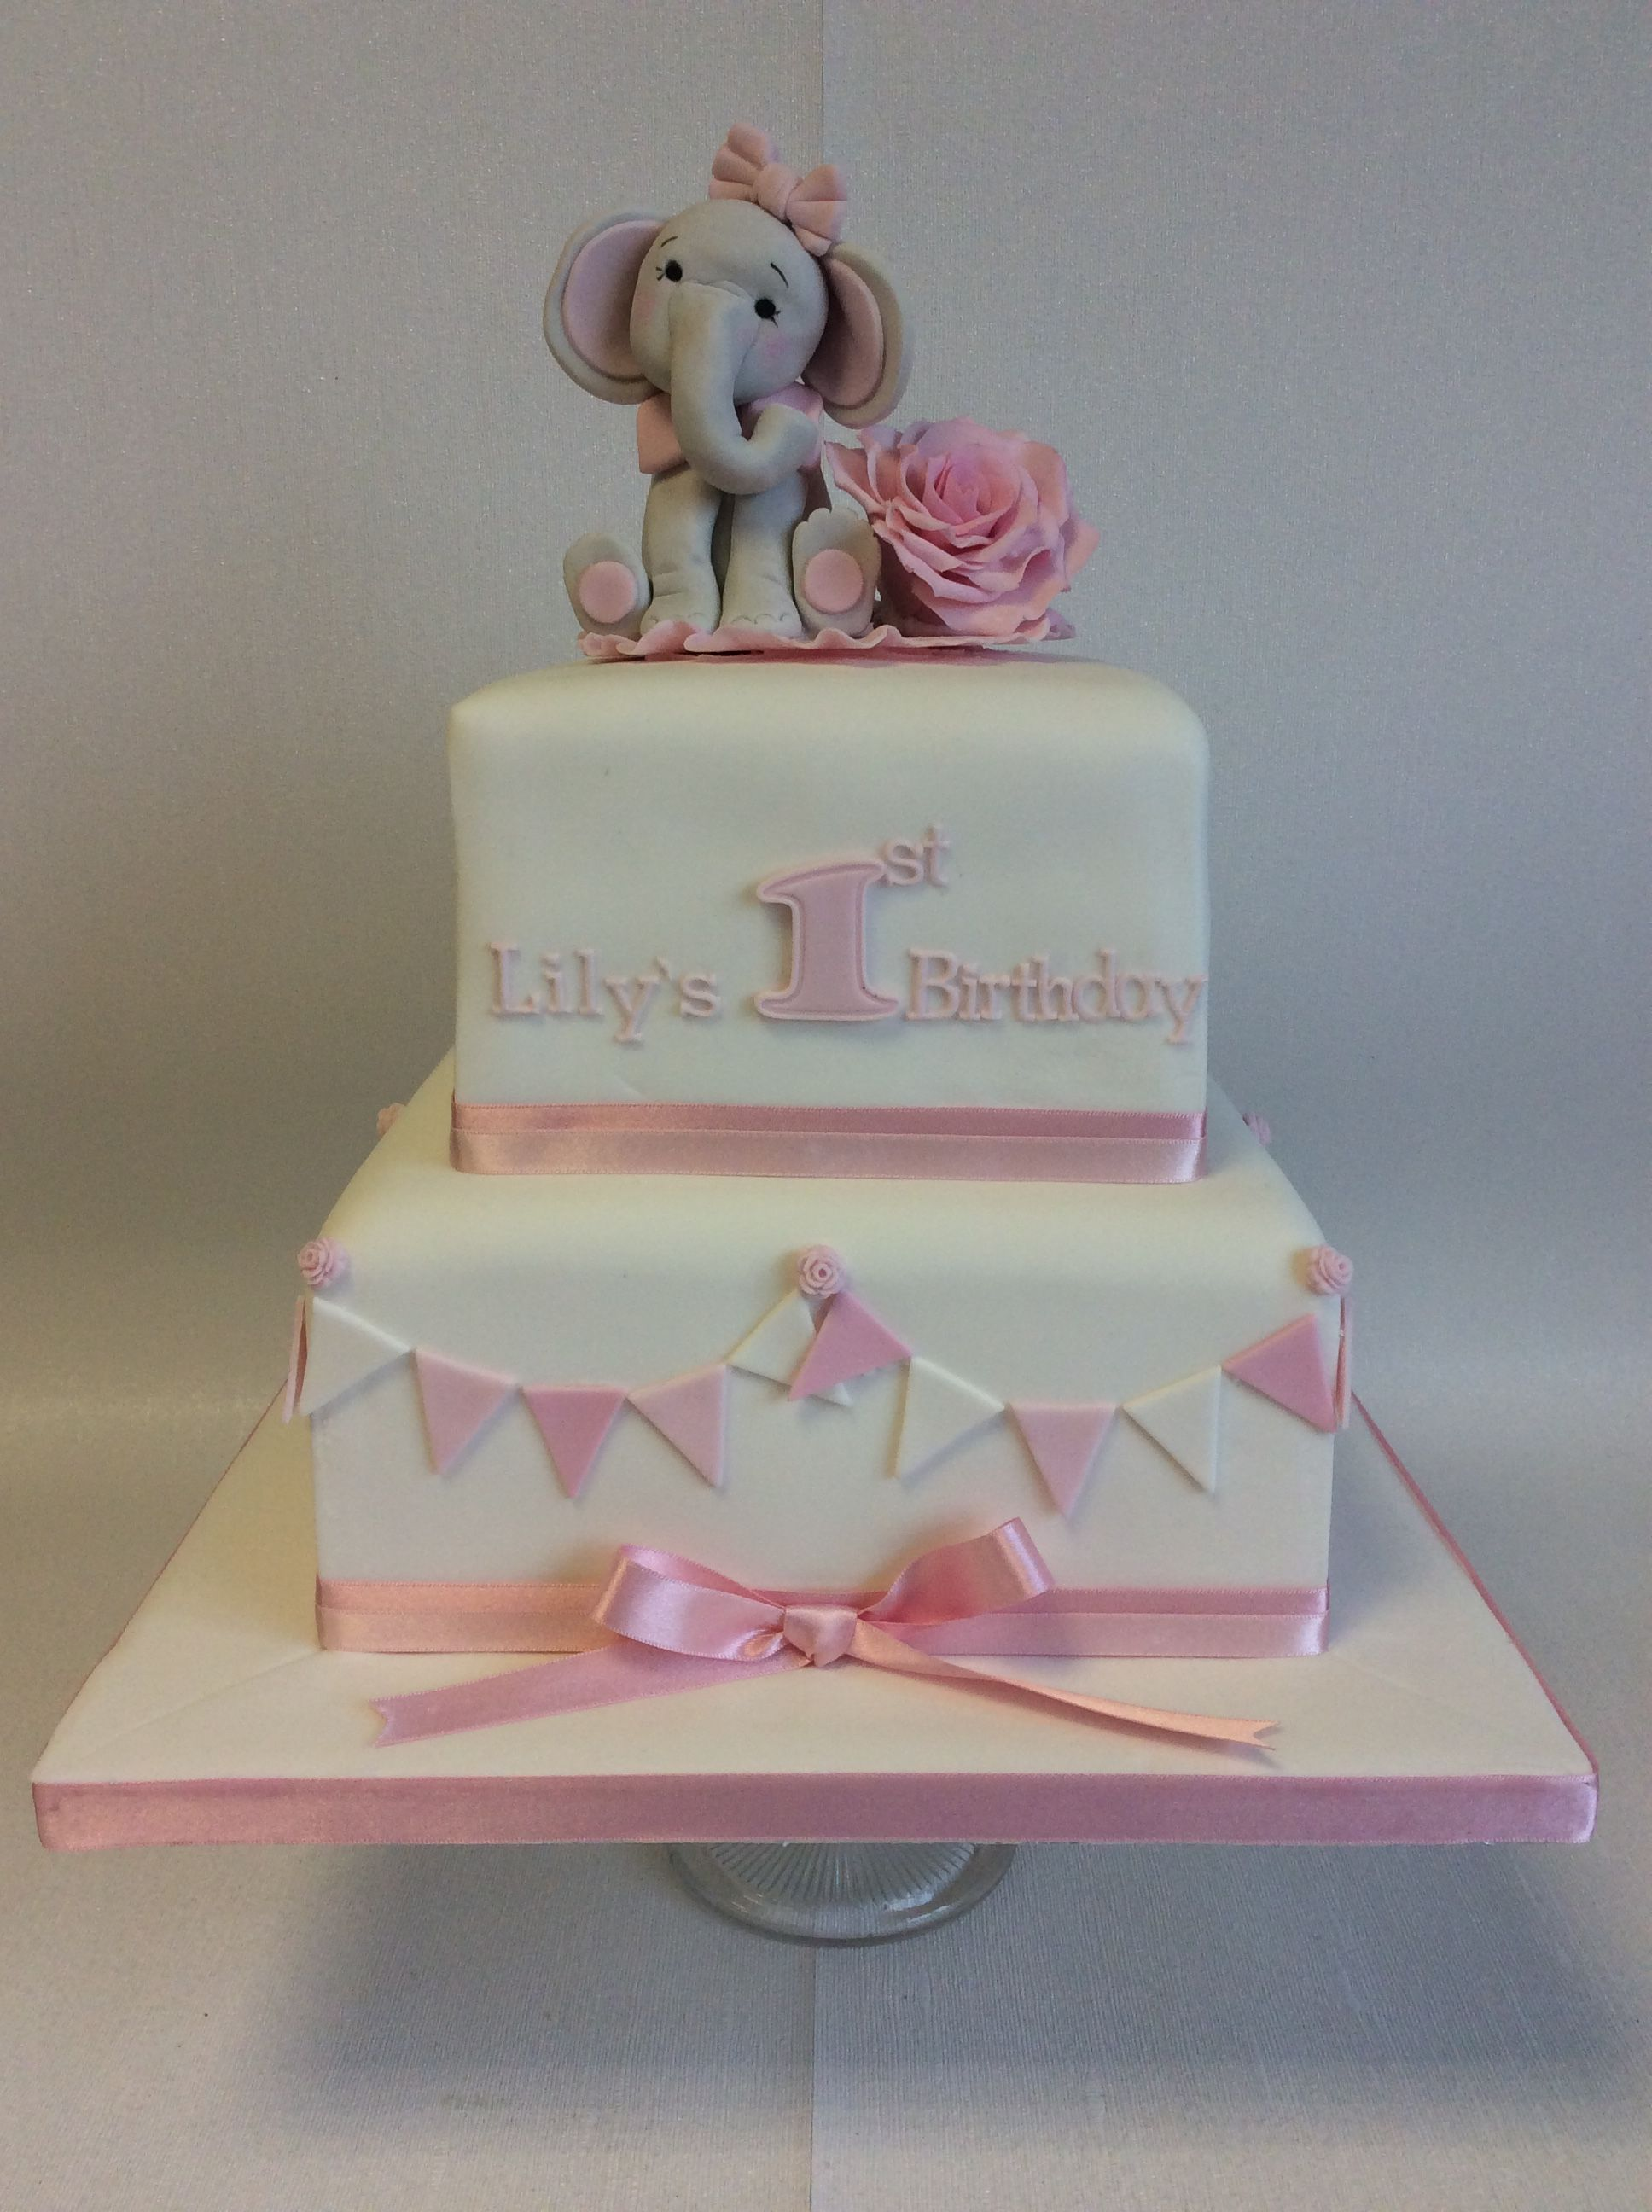 Cute 2 Tier Square First Birthday Cake With Elephant And Flower